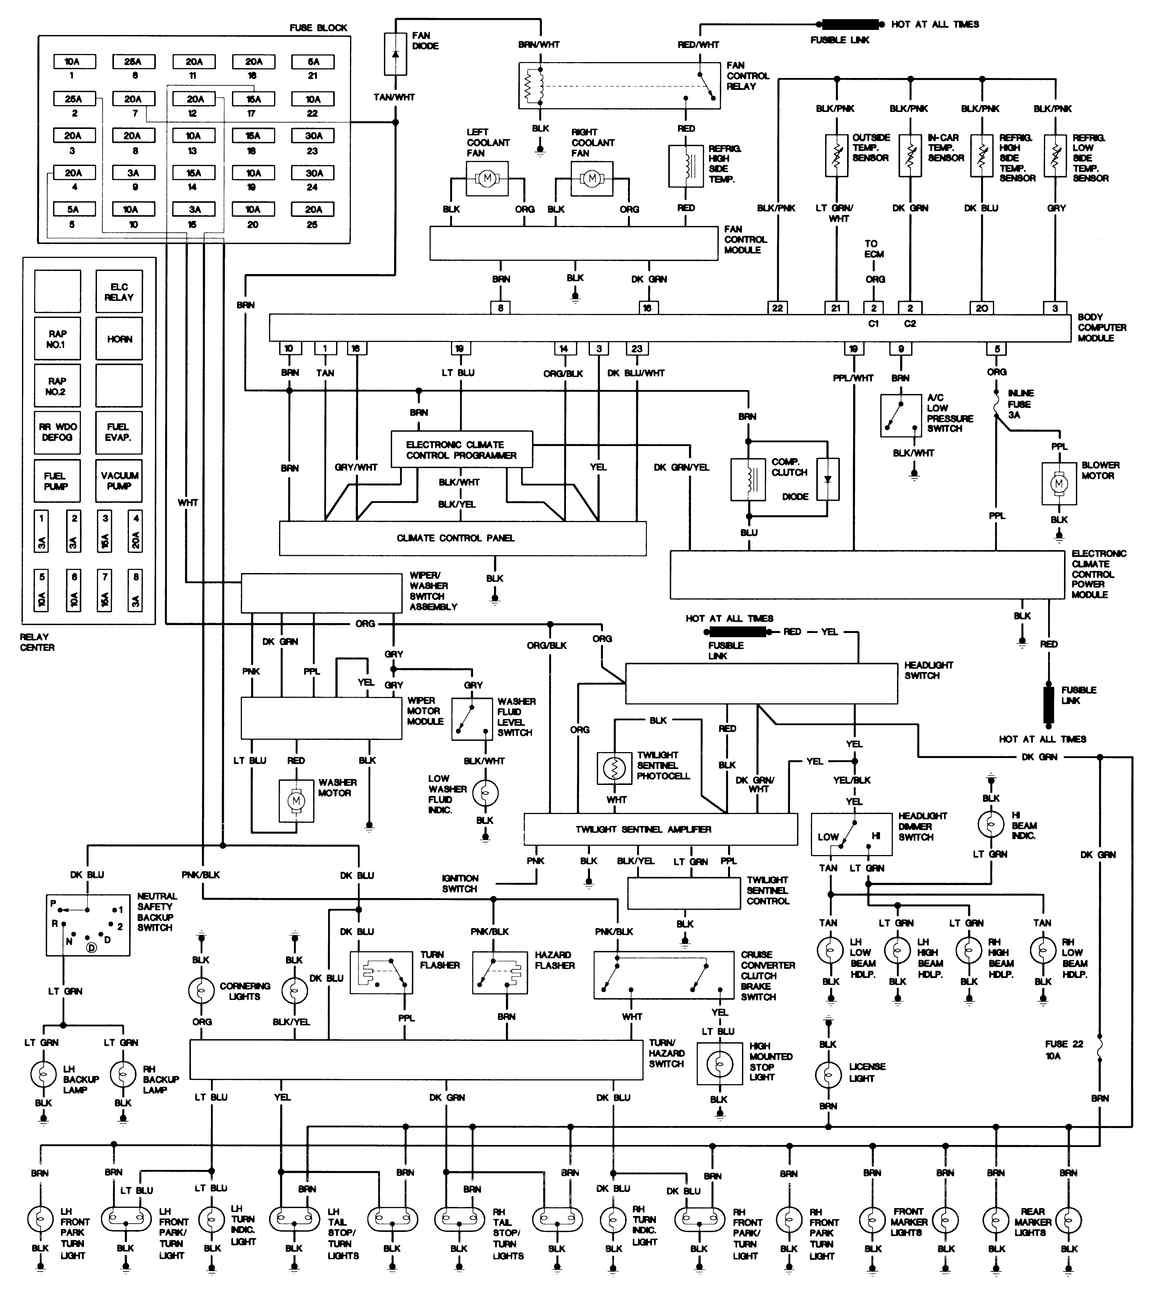 fuse diagram 2002 dts cadillac sts fan wiring pro wiring diagram  cadillac sts fan wiring pro wiring